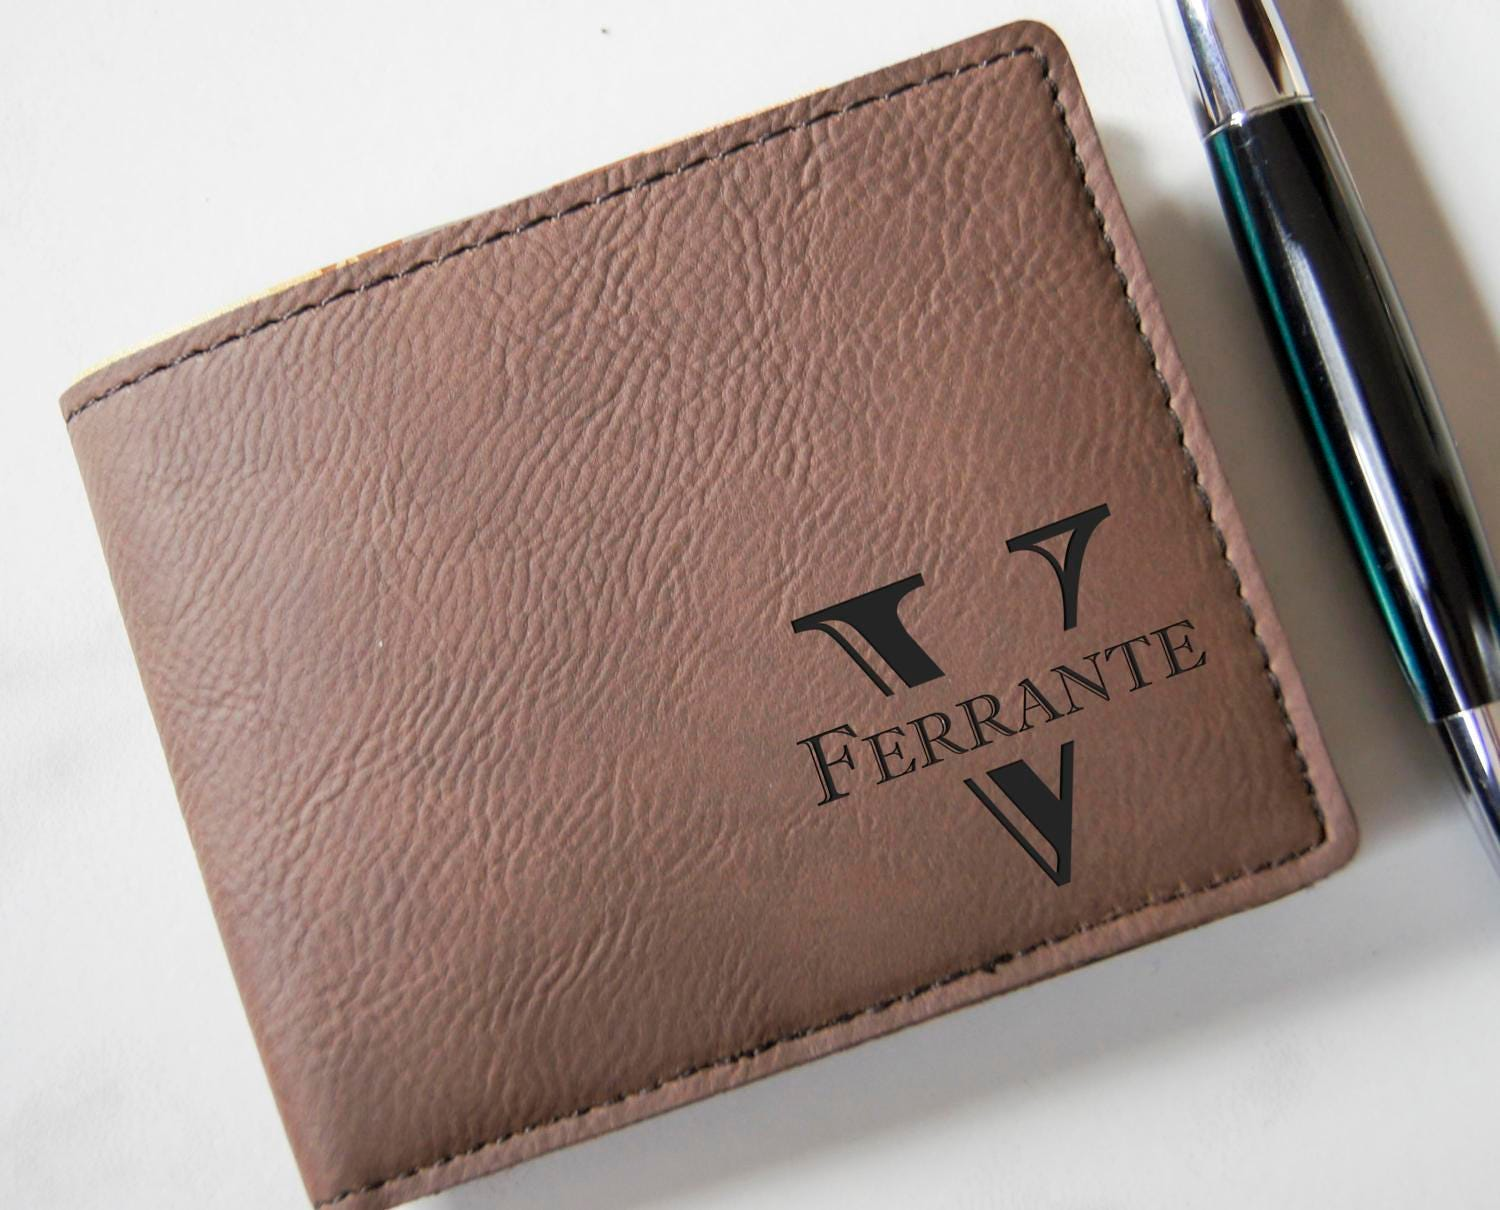 Custom leather Wallets Groomsmen Gifts Engraved Leather Wallet Personalized Mens Wallet Leatherette wallets Gifts for him